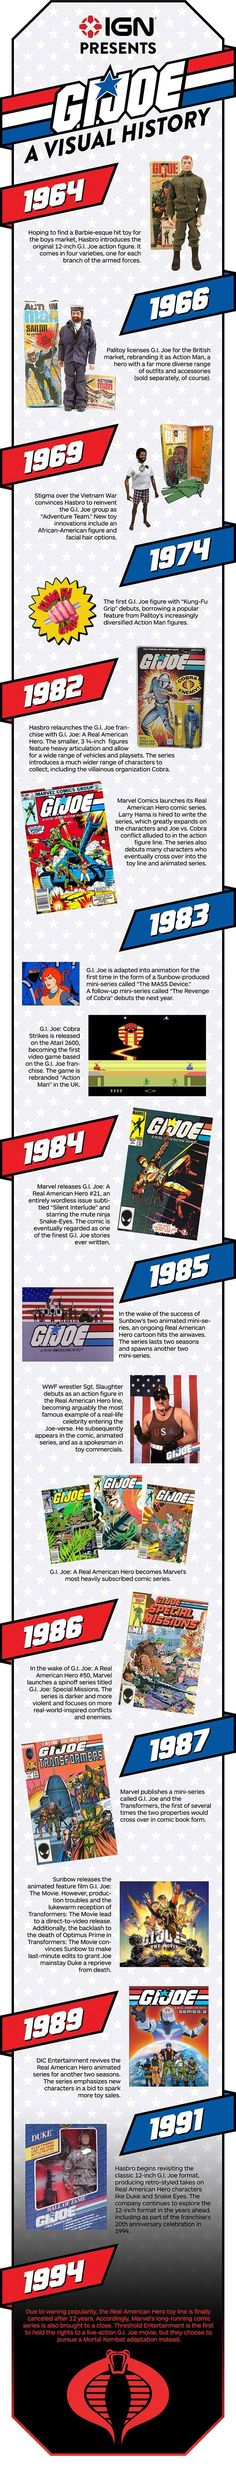 GI Joe A Visual History